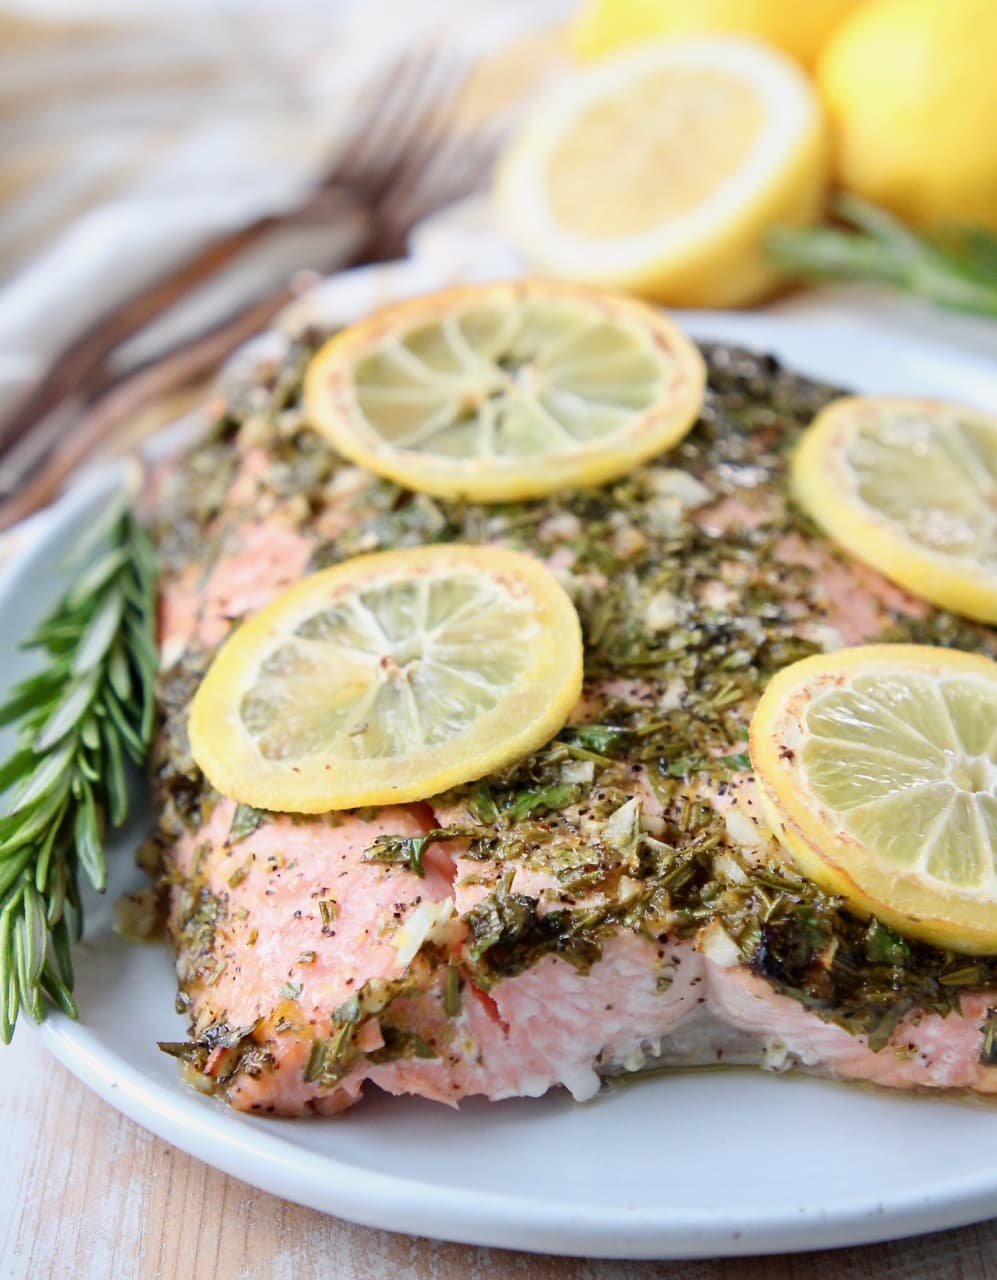 Herb roasted salmon on plate with lemon slices and a rosemary sprig on the side